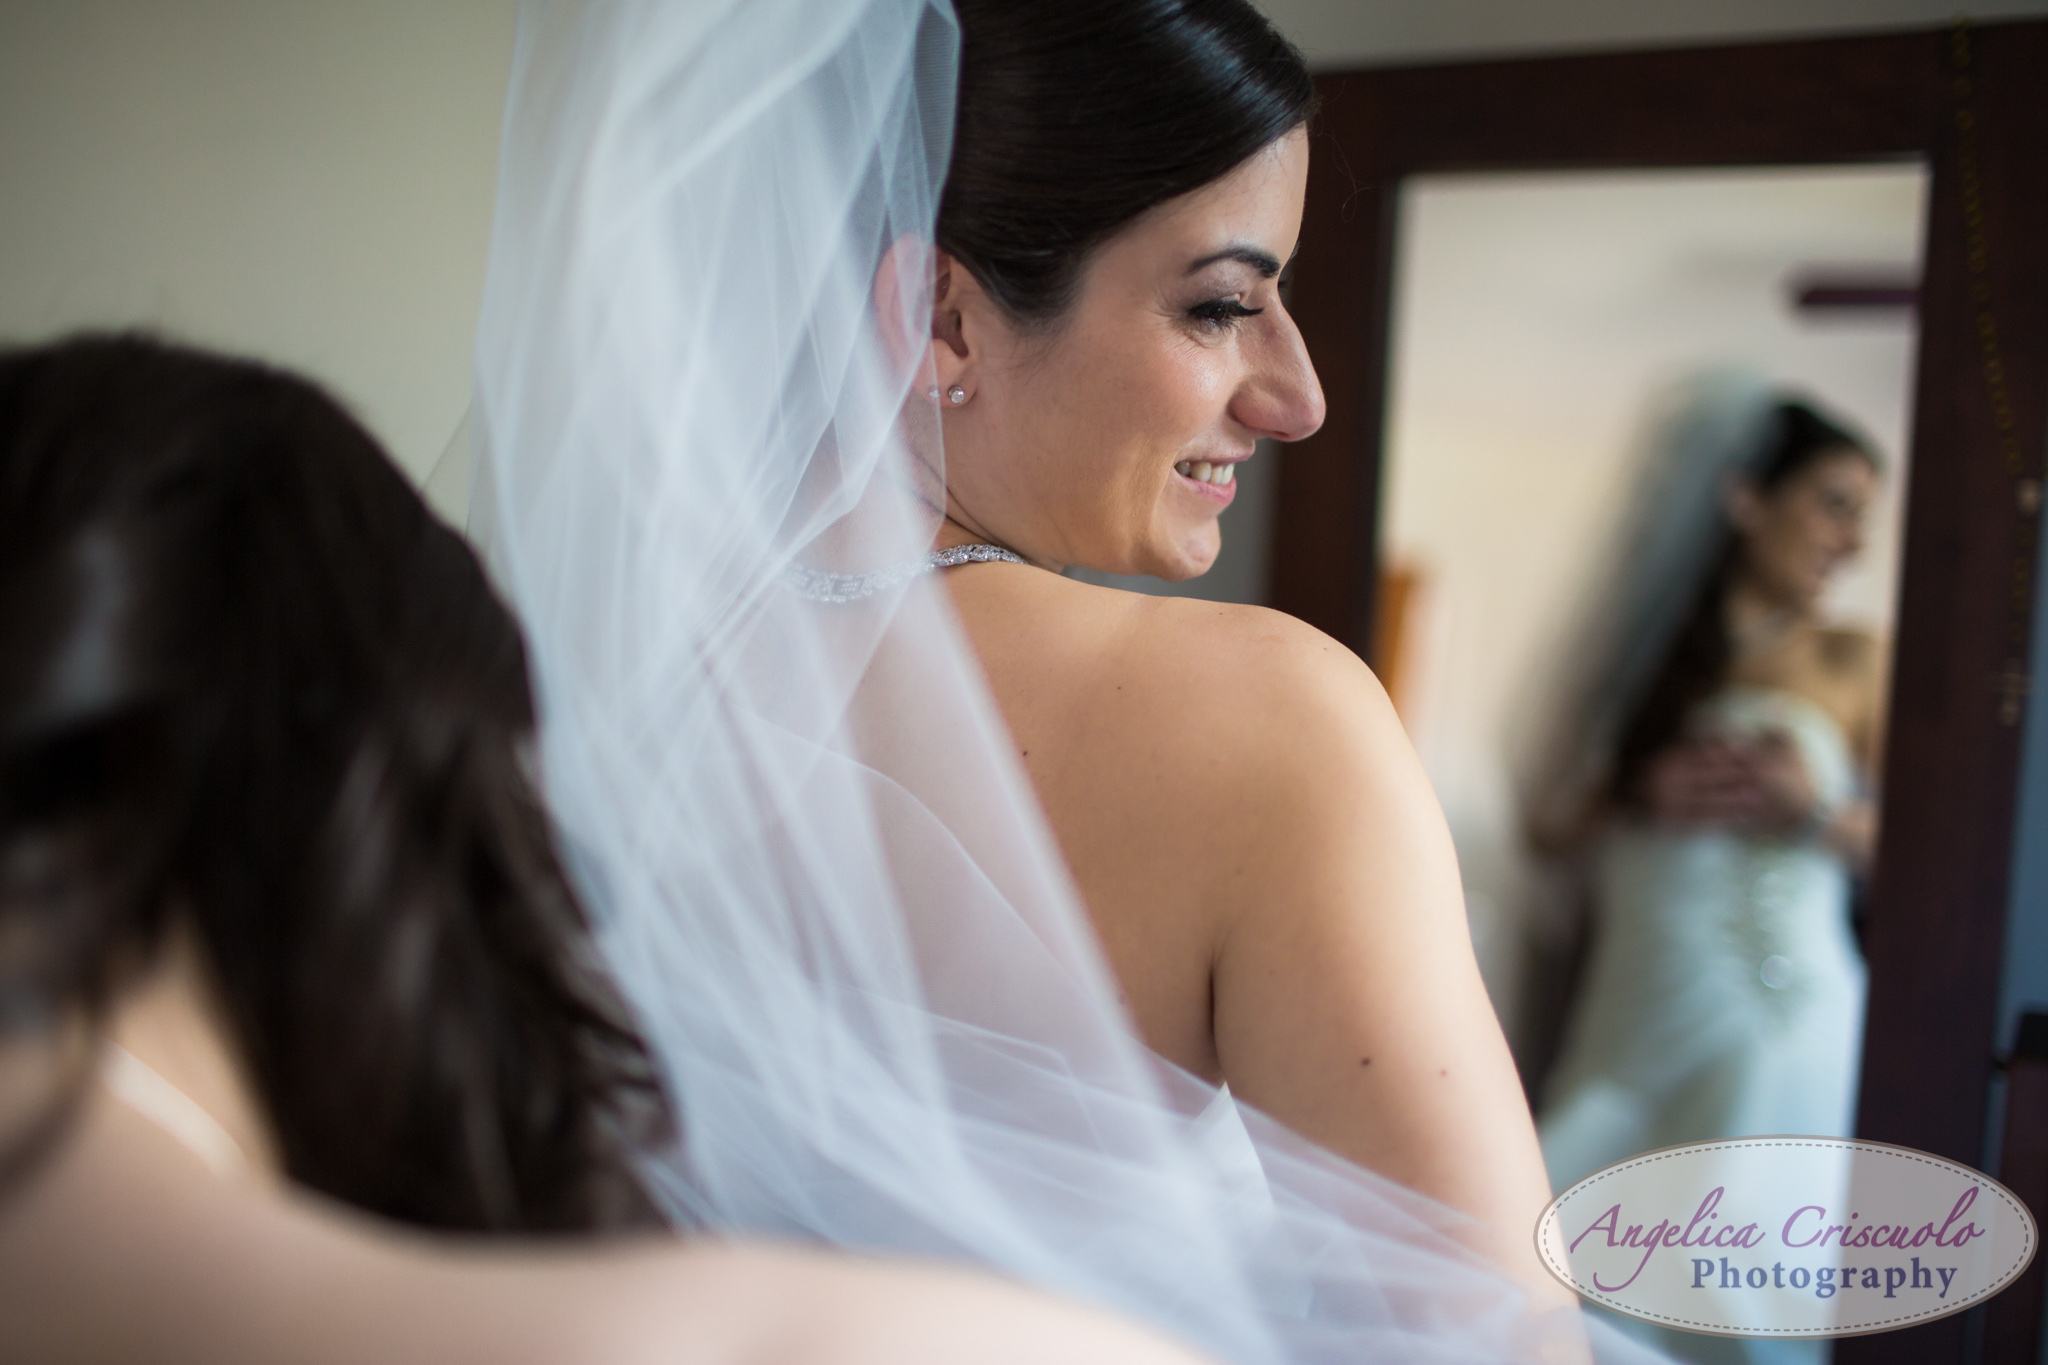 New York Wedding Photographer Getting Ready Bride